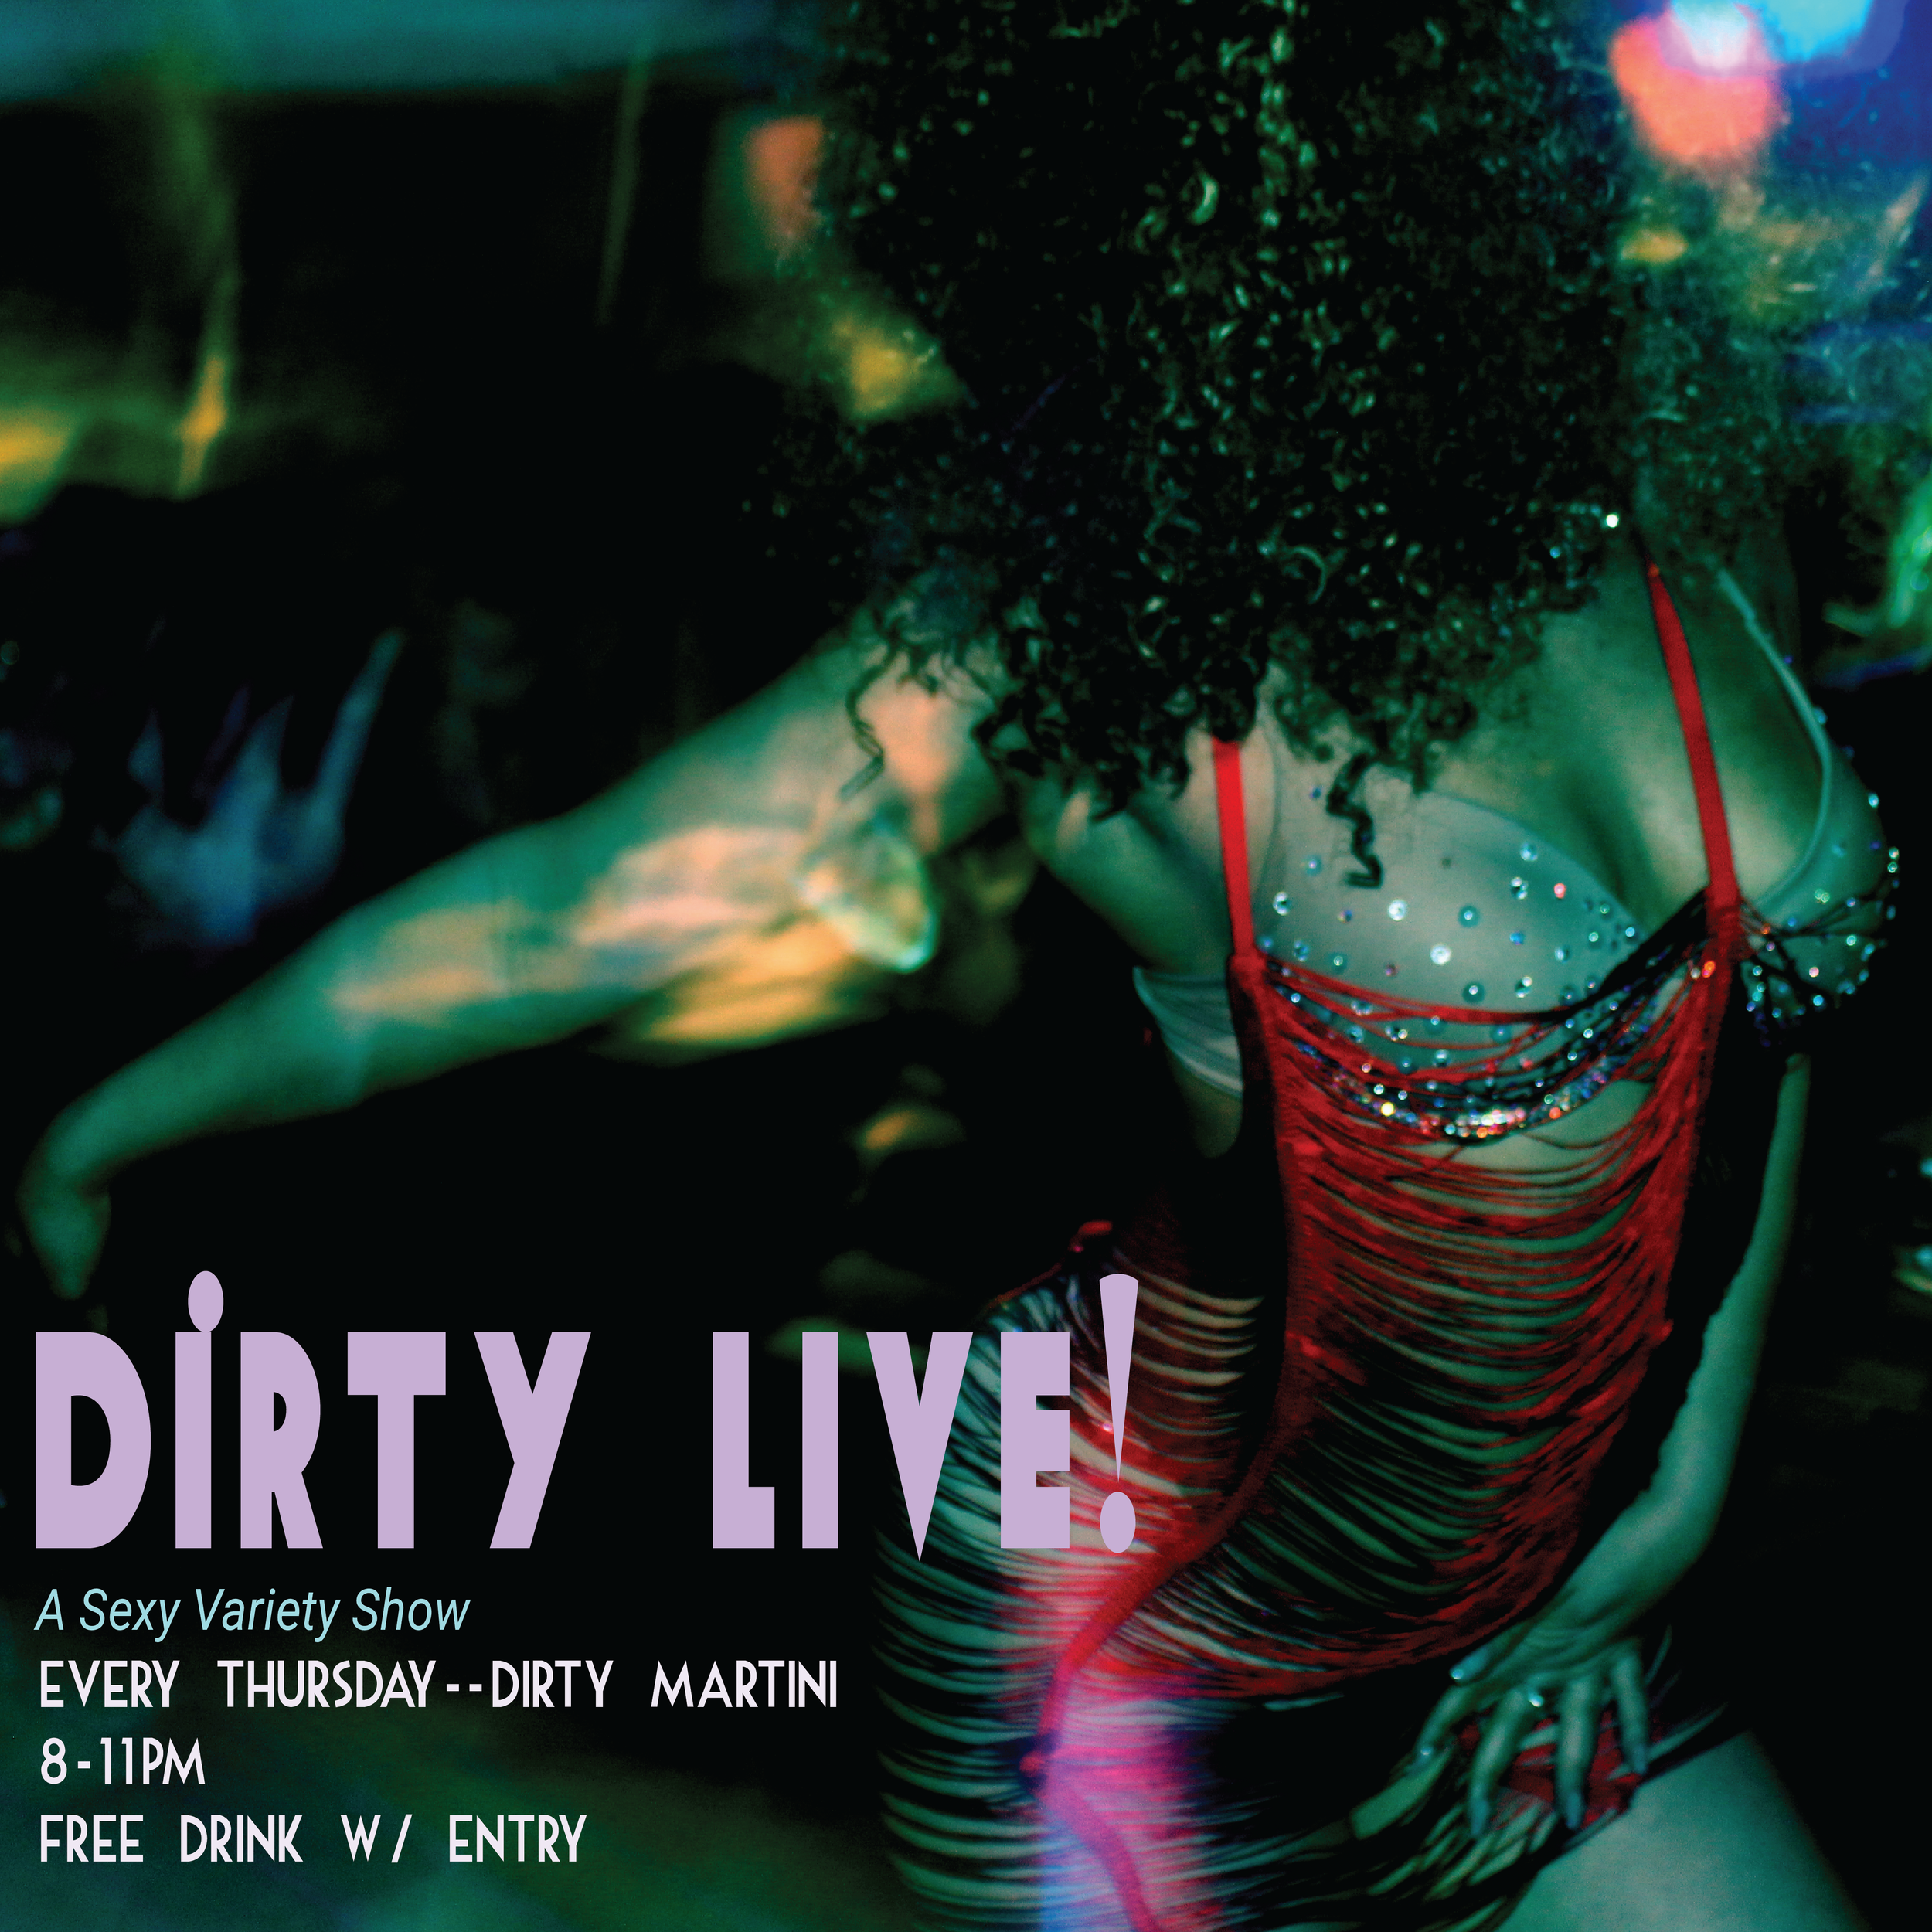 Dirty Live! A Sexy Variety Show